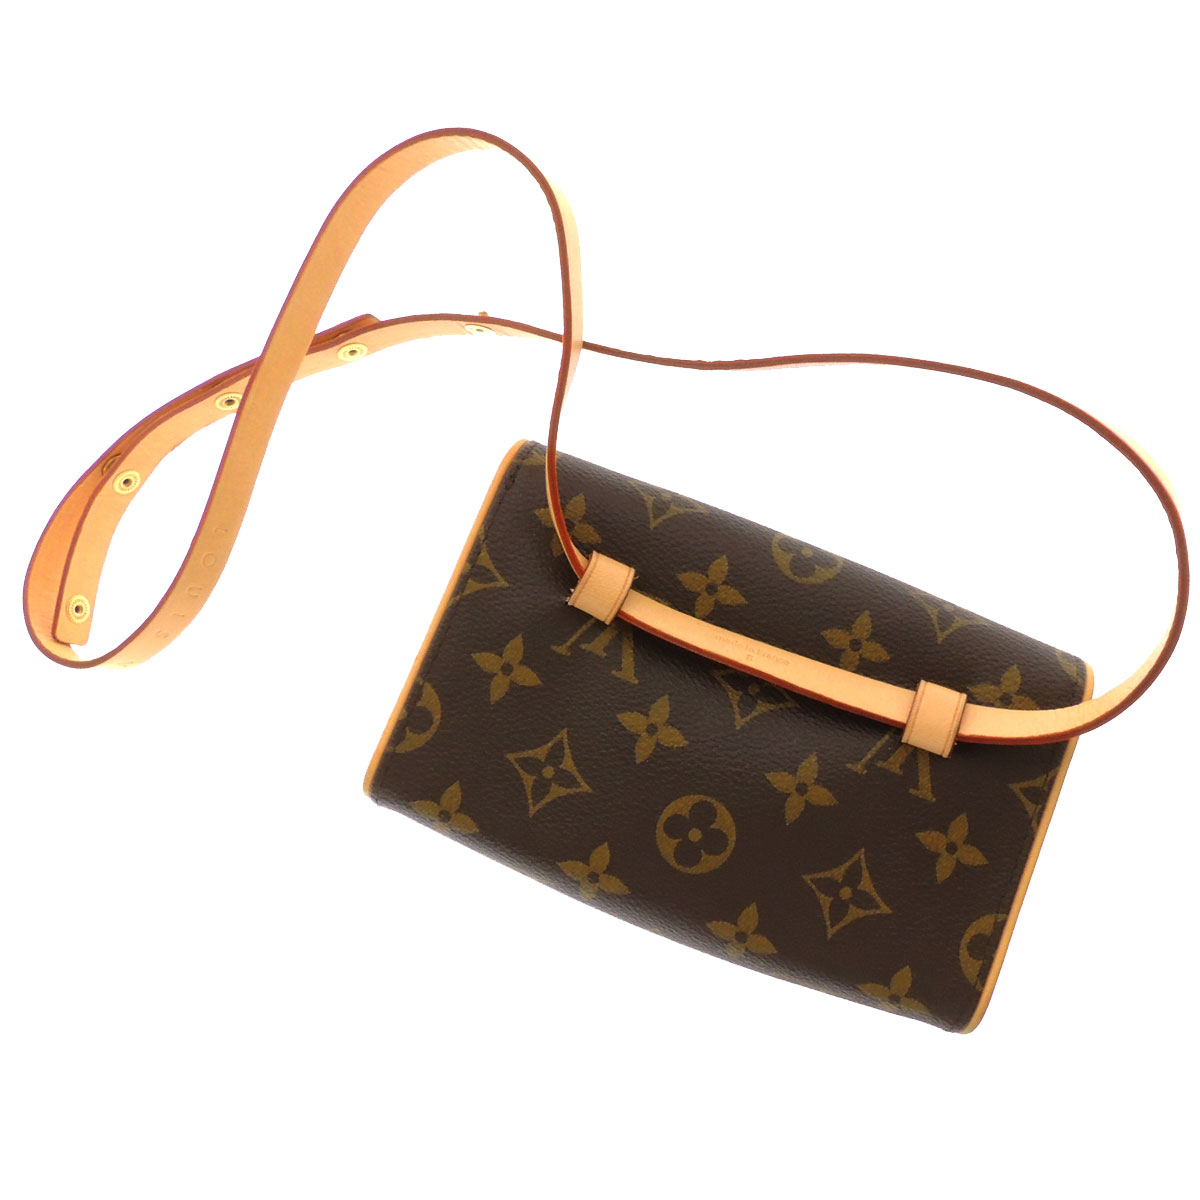 Women's shoulder bag Monogram Canvas, LOUIS VUITTON pochettfloranti M51855